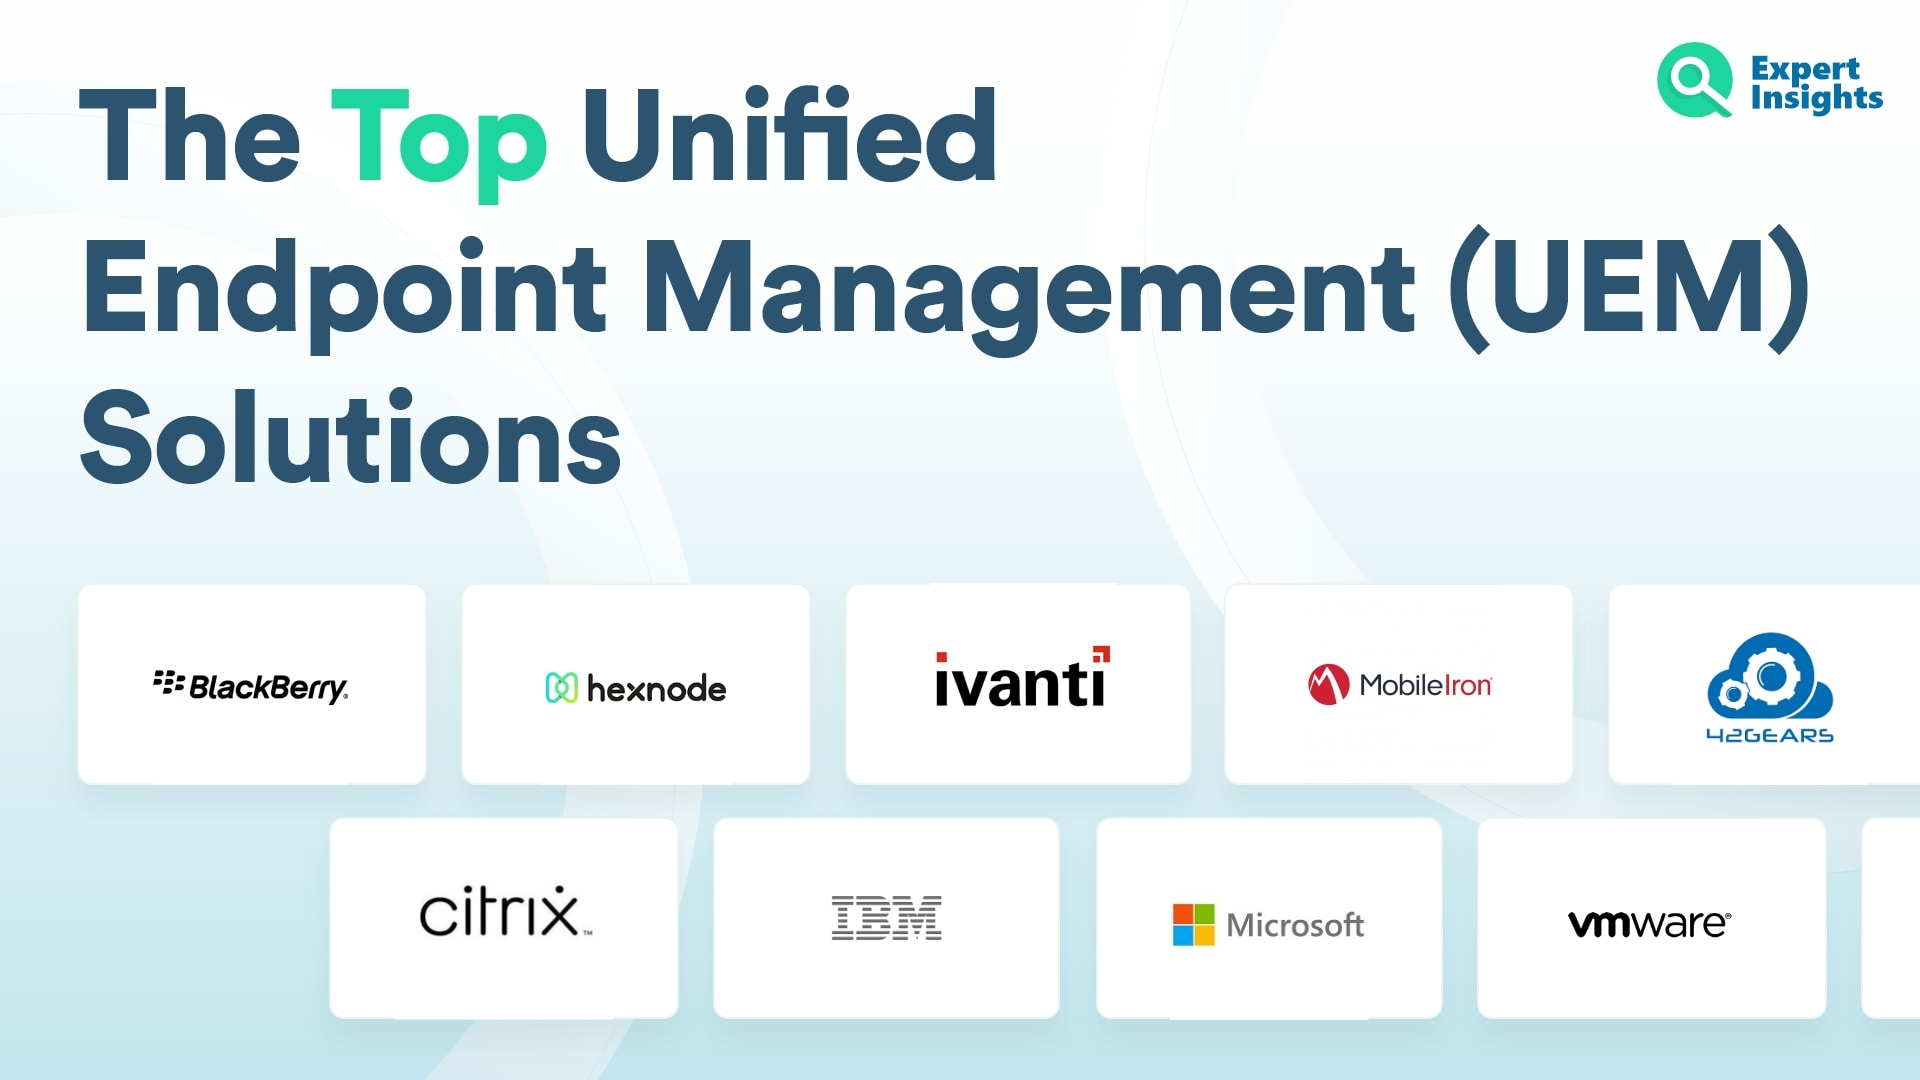 The Top Unified Endpoint Management (UEM) Solutions - Expert Insights